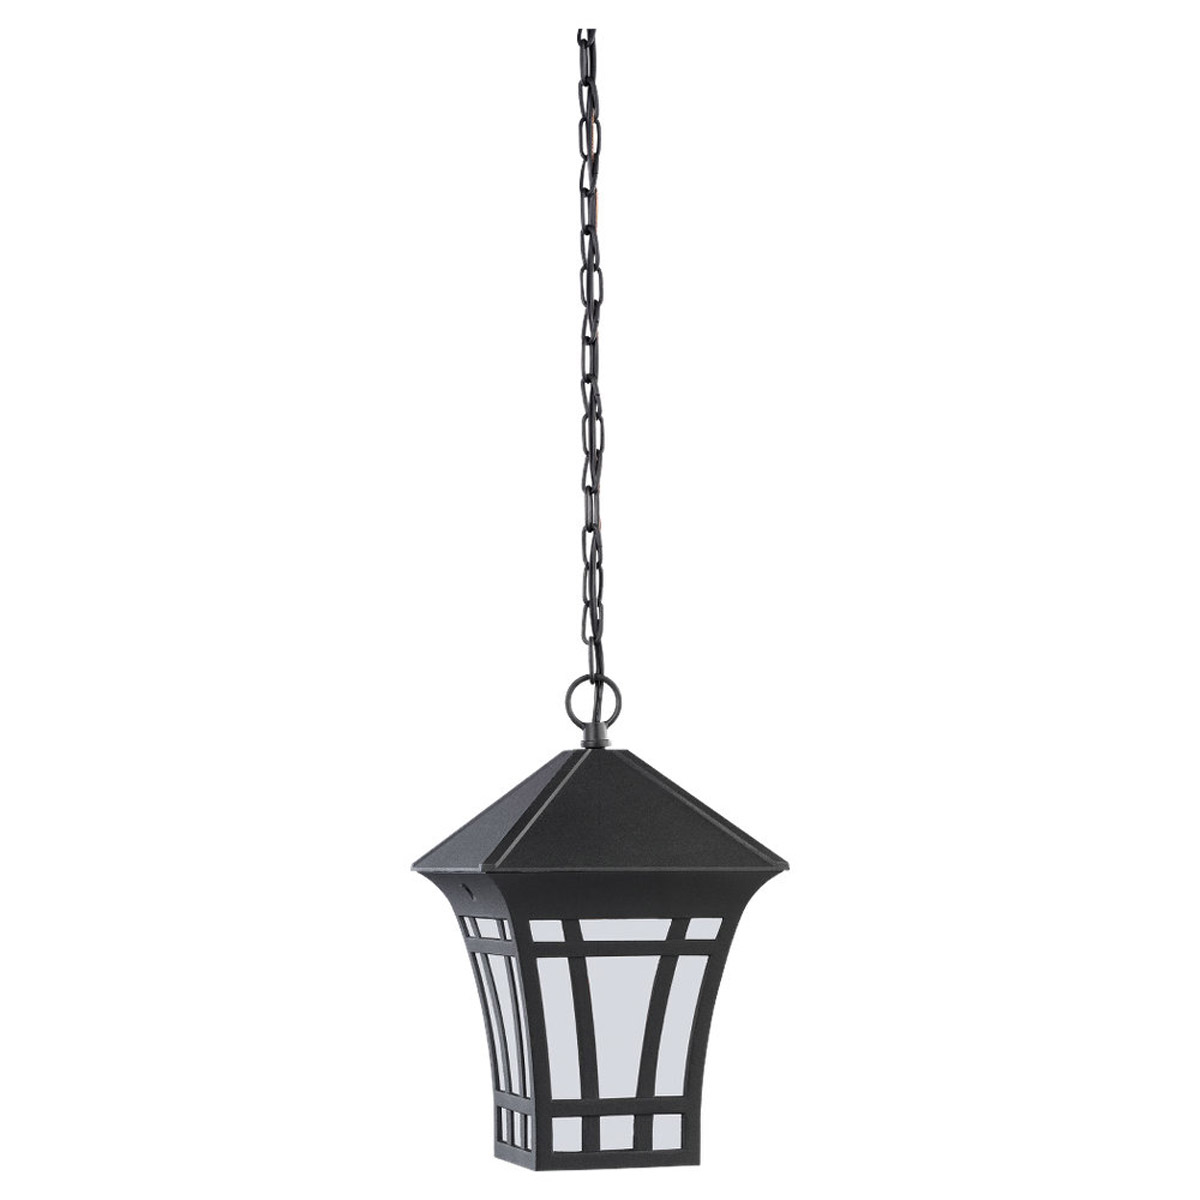 Sea Gull Lighting Herrington 1 Light Outdoor Pendant in Black 69131PBLE-12 photo